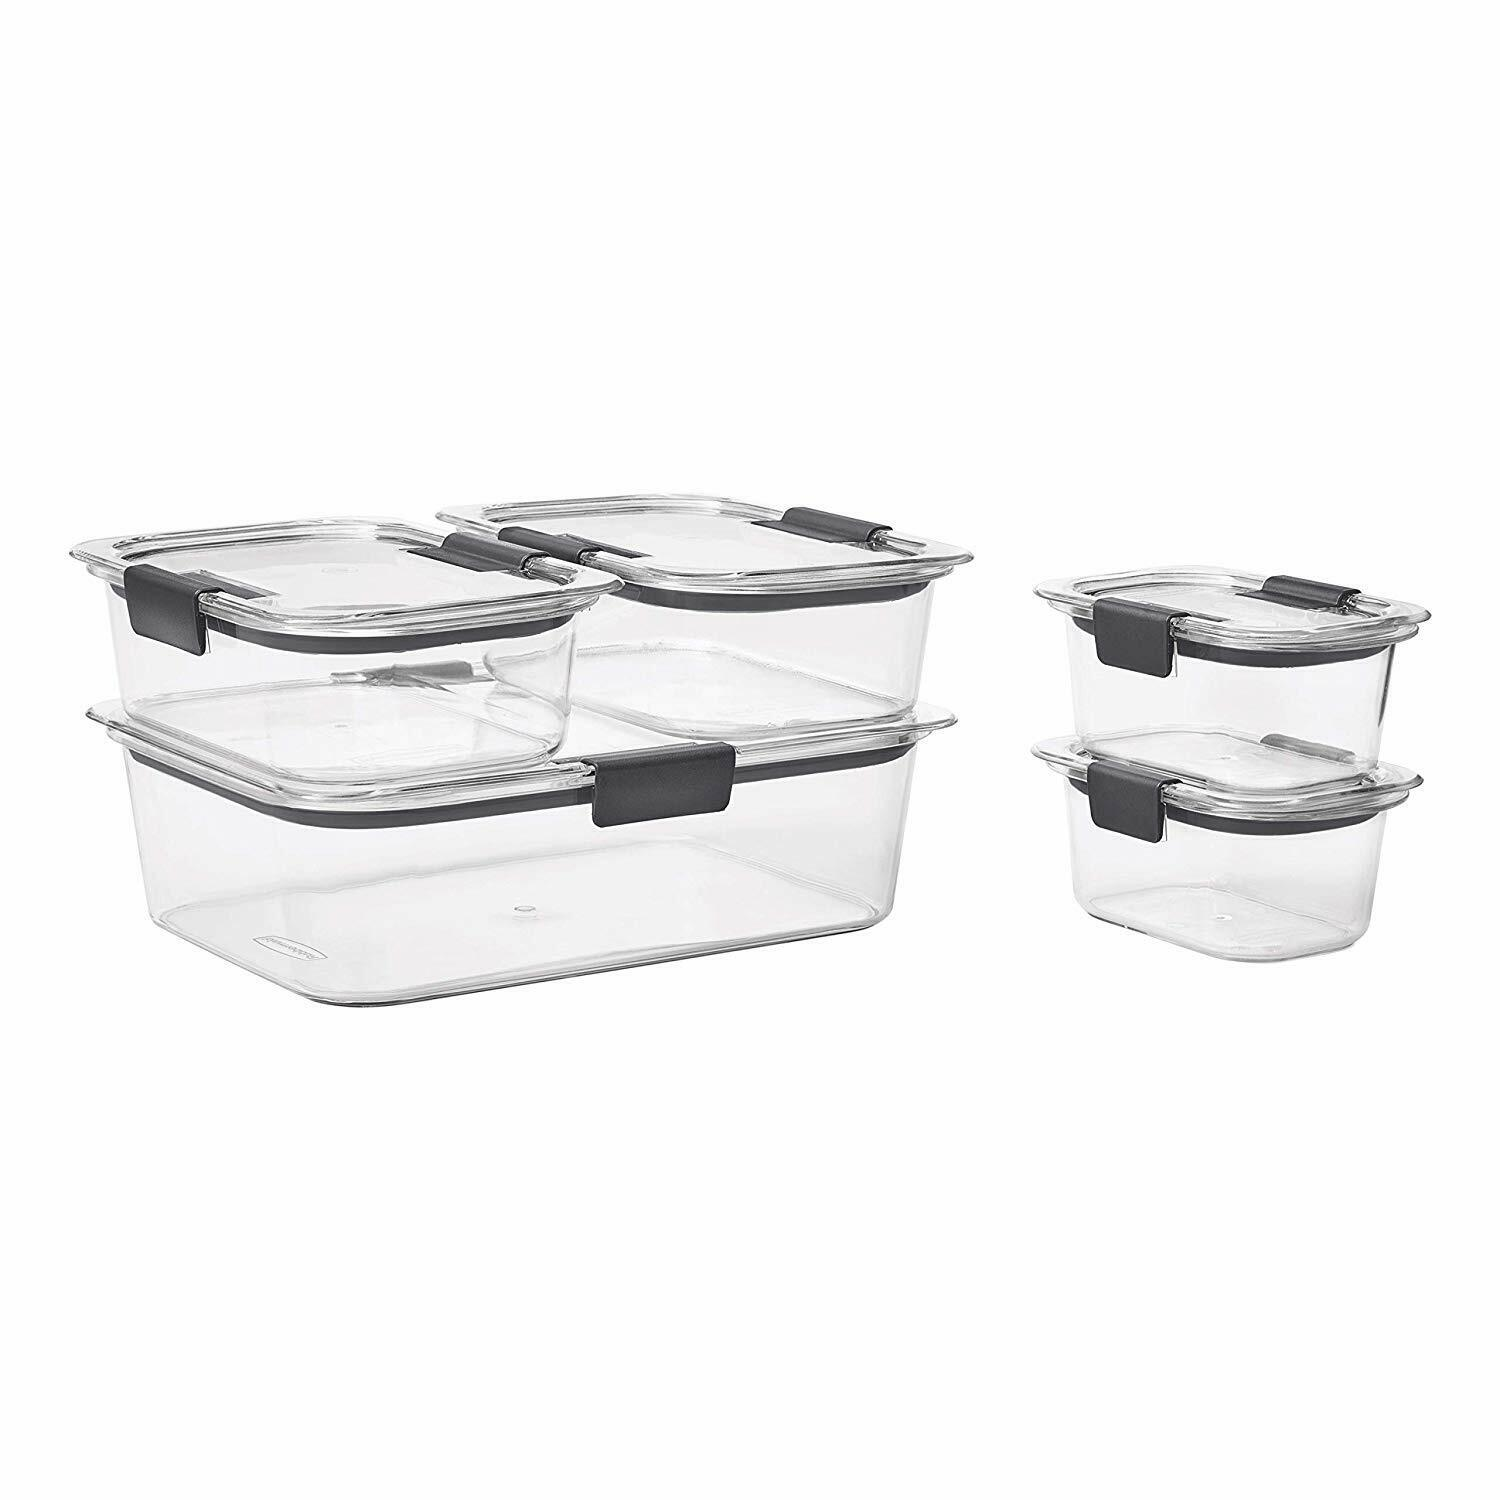 Rubbermaid Brilliance Leak-Proof Food Storage Containers Set of 5, BPA-Free, NEW 1